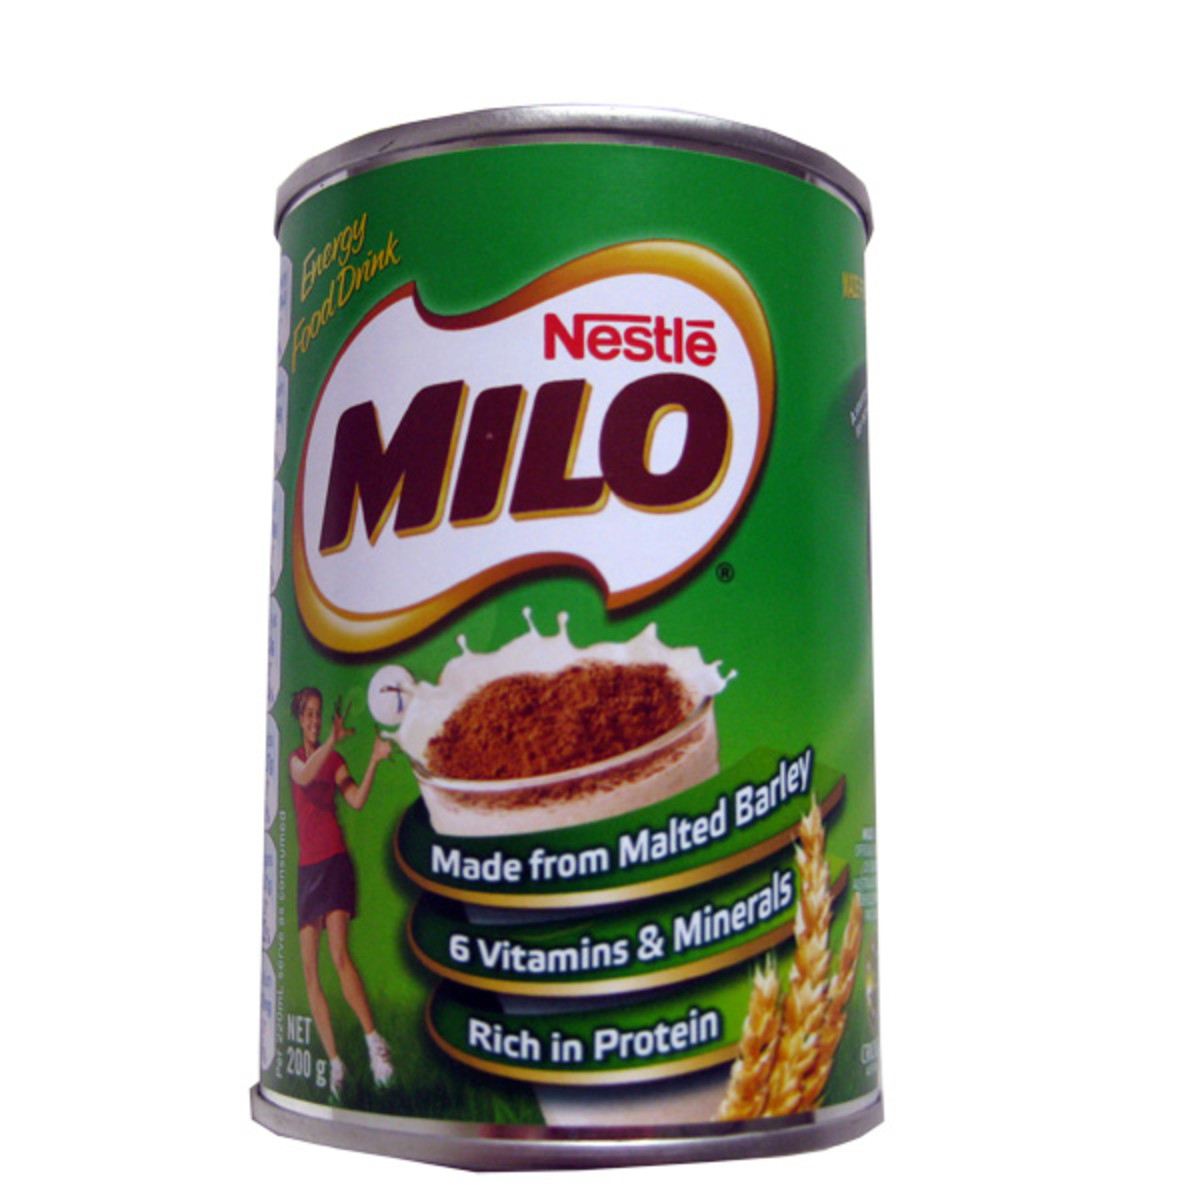 In my opinion, Milo is better than coffee or hot chocolate.